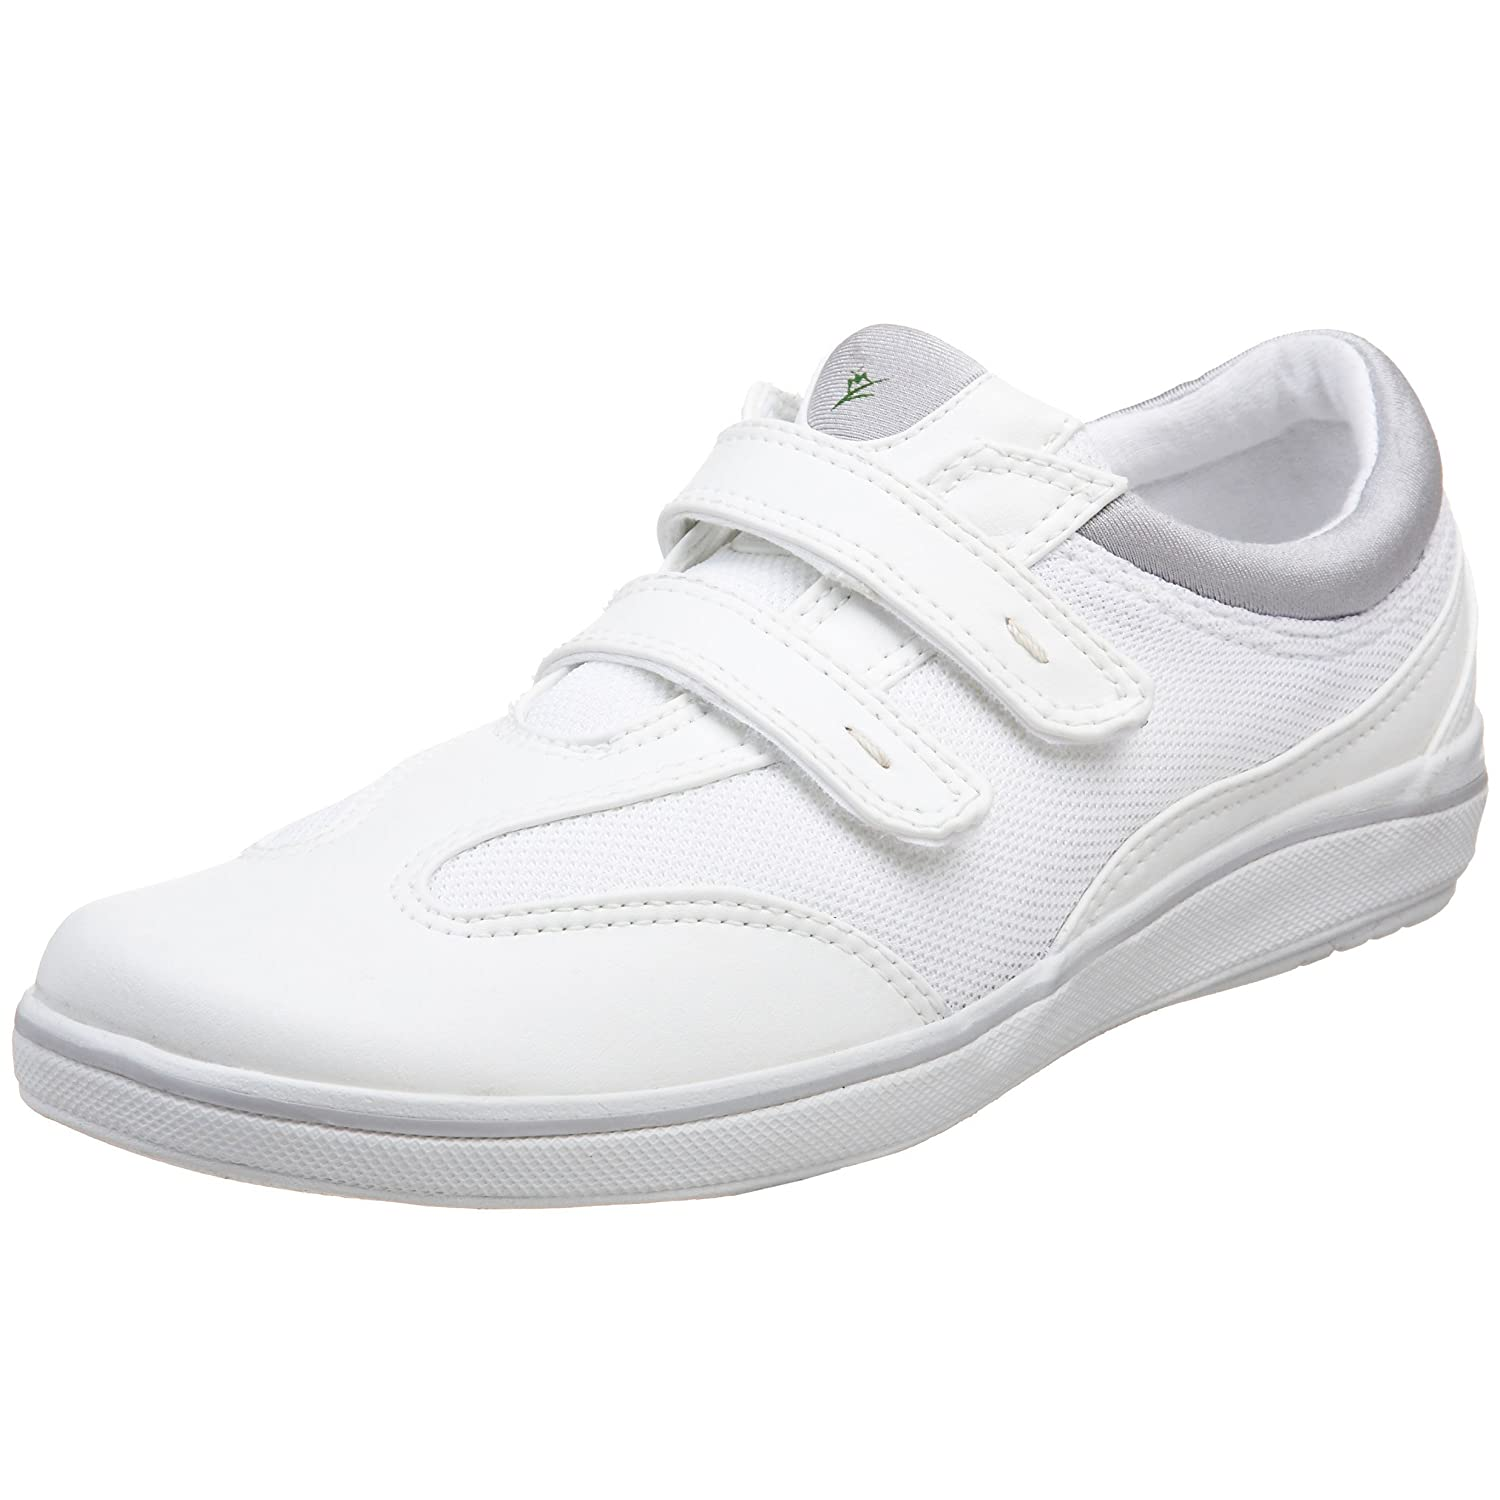 Grasshoppers Women's Stretch Plus Hook-and-Loop Sneaker B000WNHXH8 11 B(M) US|White